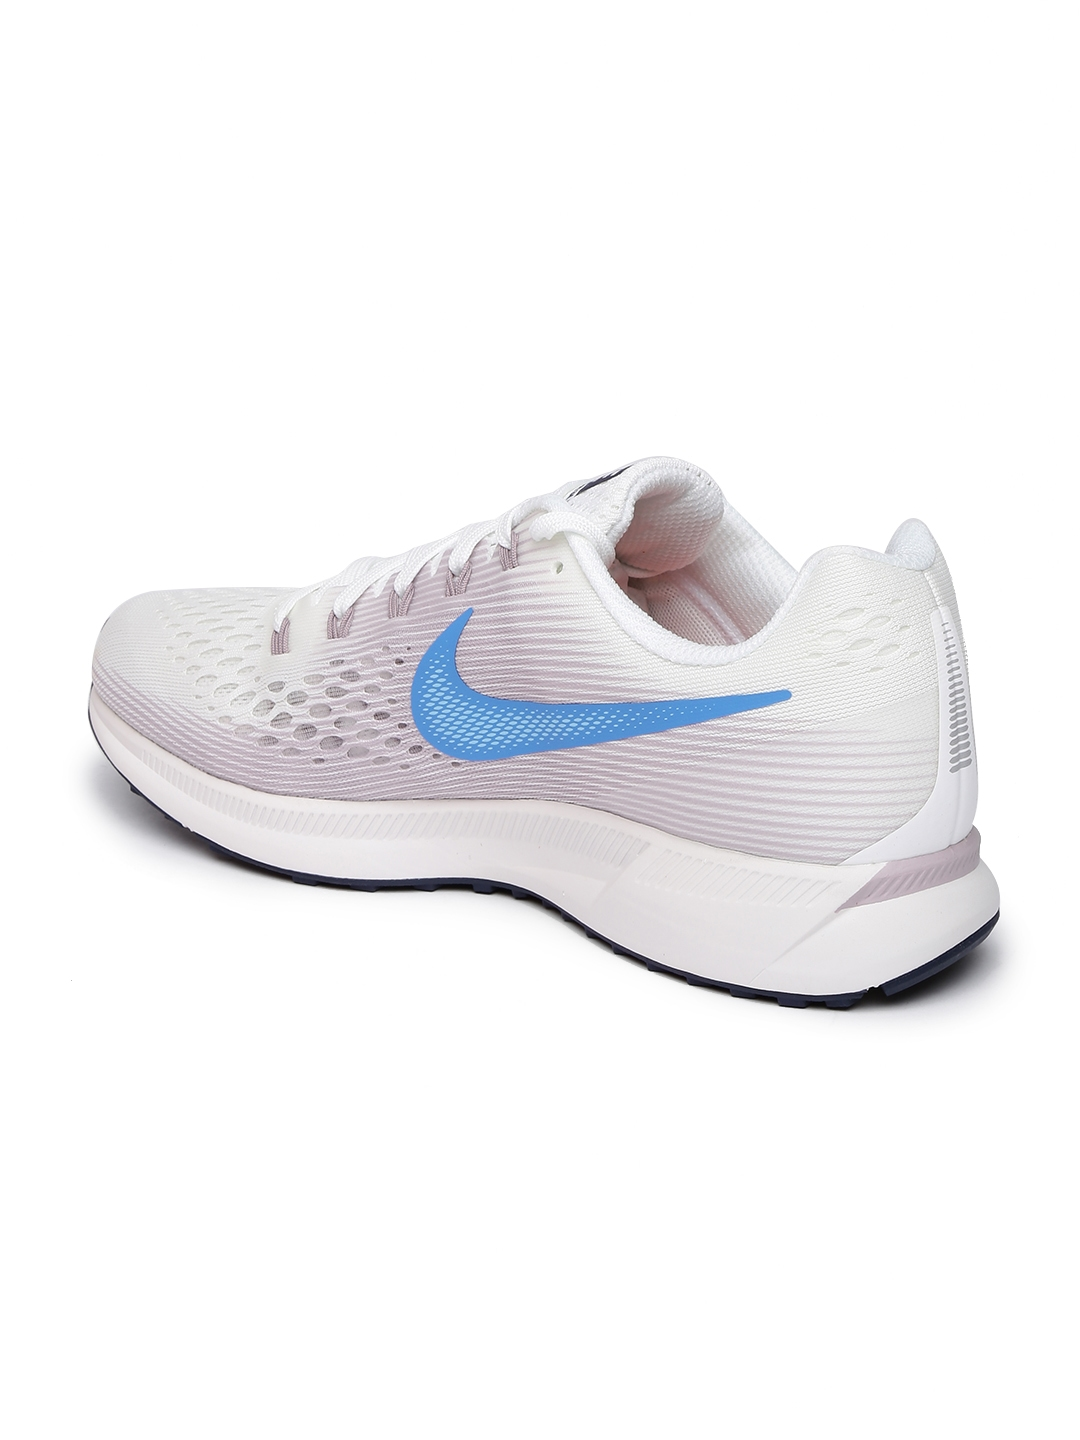 fdcf368e91af Buy Nike Women White   Lavender AIR ZOOM PEGASUS 34 Running Shoes ...